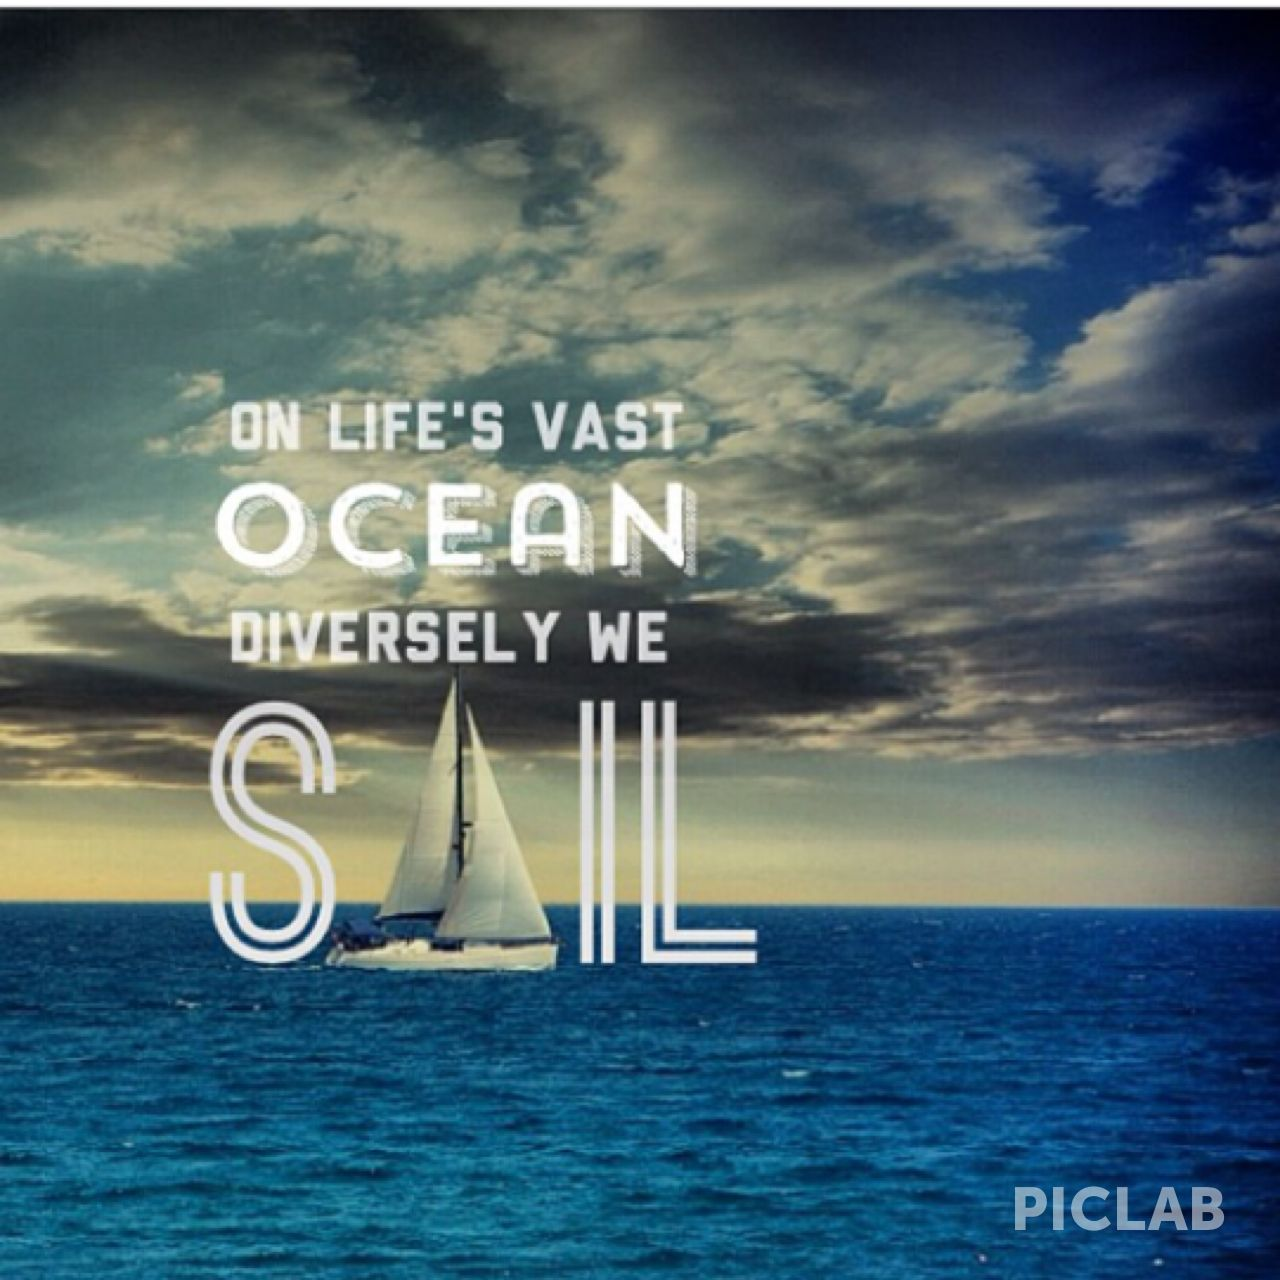 Inspirational Quotes Sailing: Pin By Kierstin Hahn On Piclab•